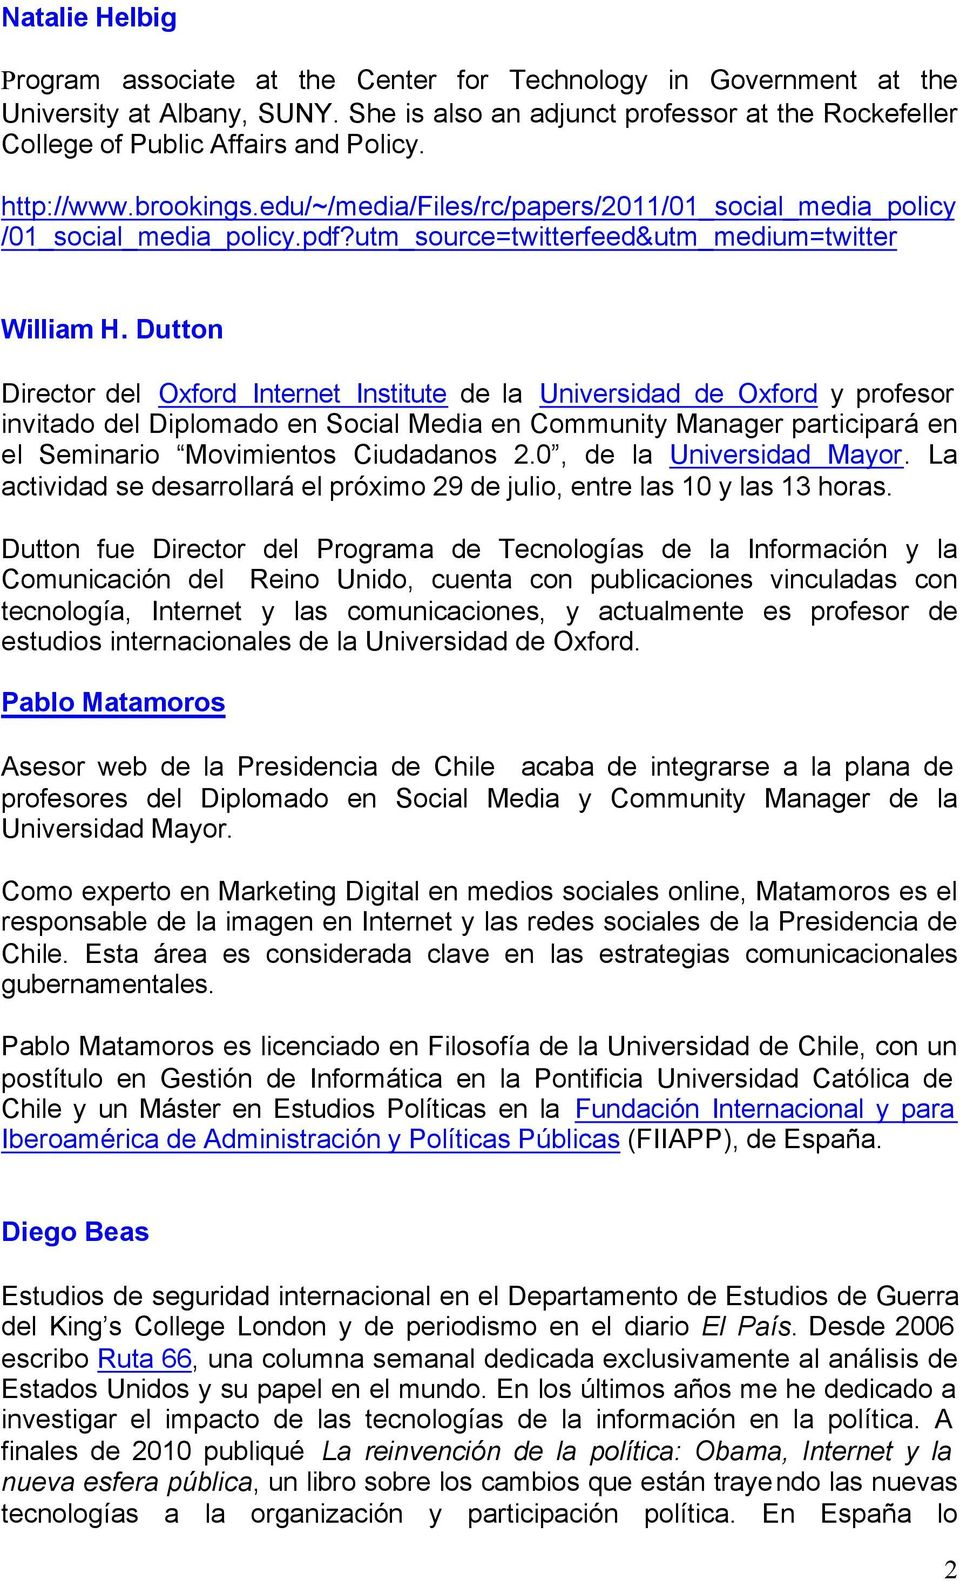 Dutton Director del Oxford Internet Institute de la Universidad de Oxford y profesor invitado del Diplomado en Social Media en Community Manager participará en el Seminario Movimientos Ciudadanos 2.